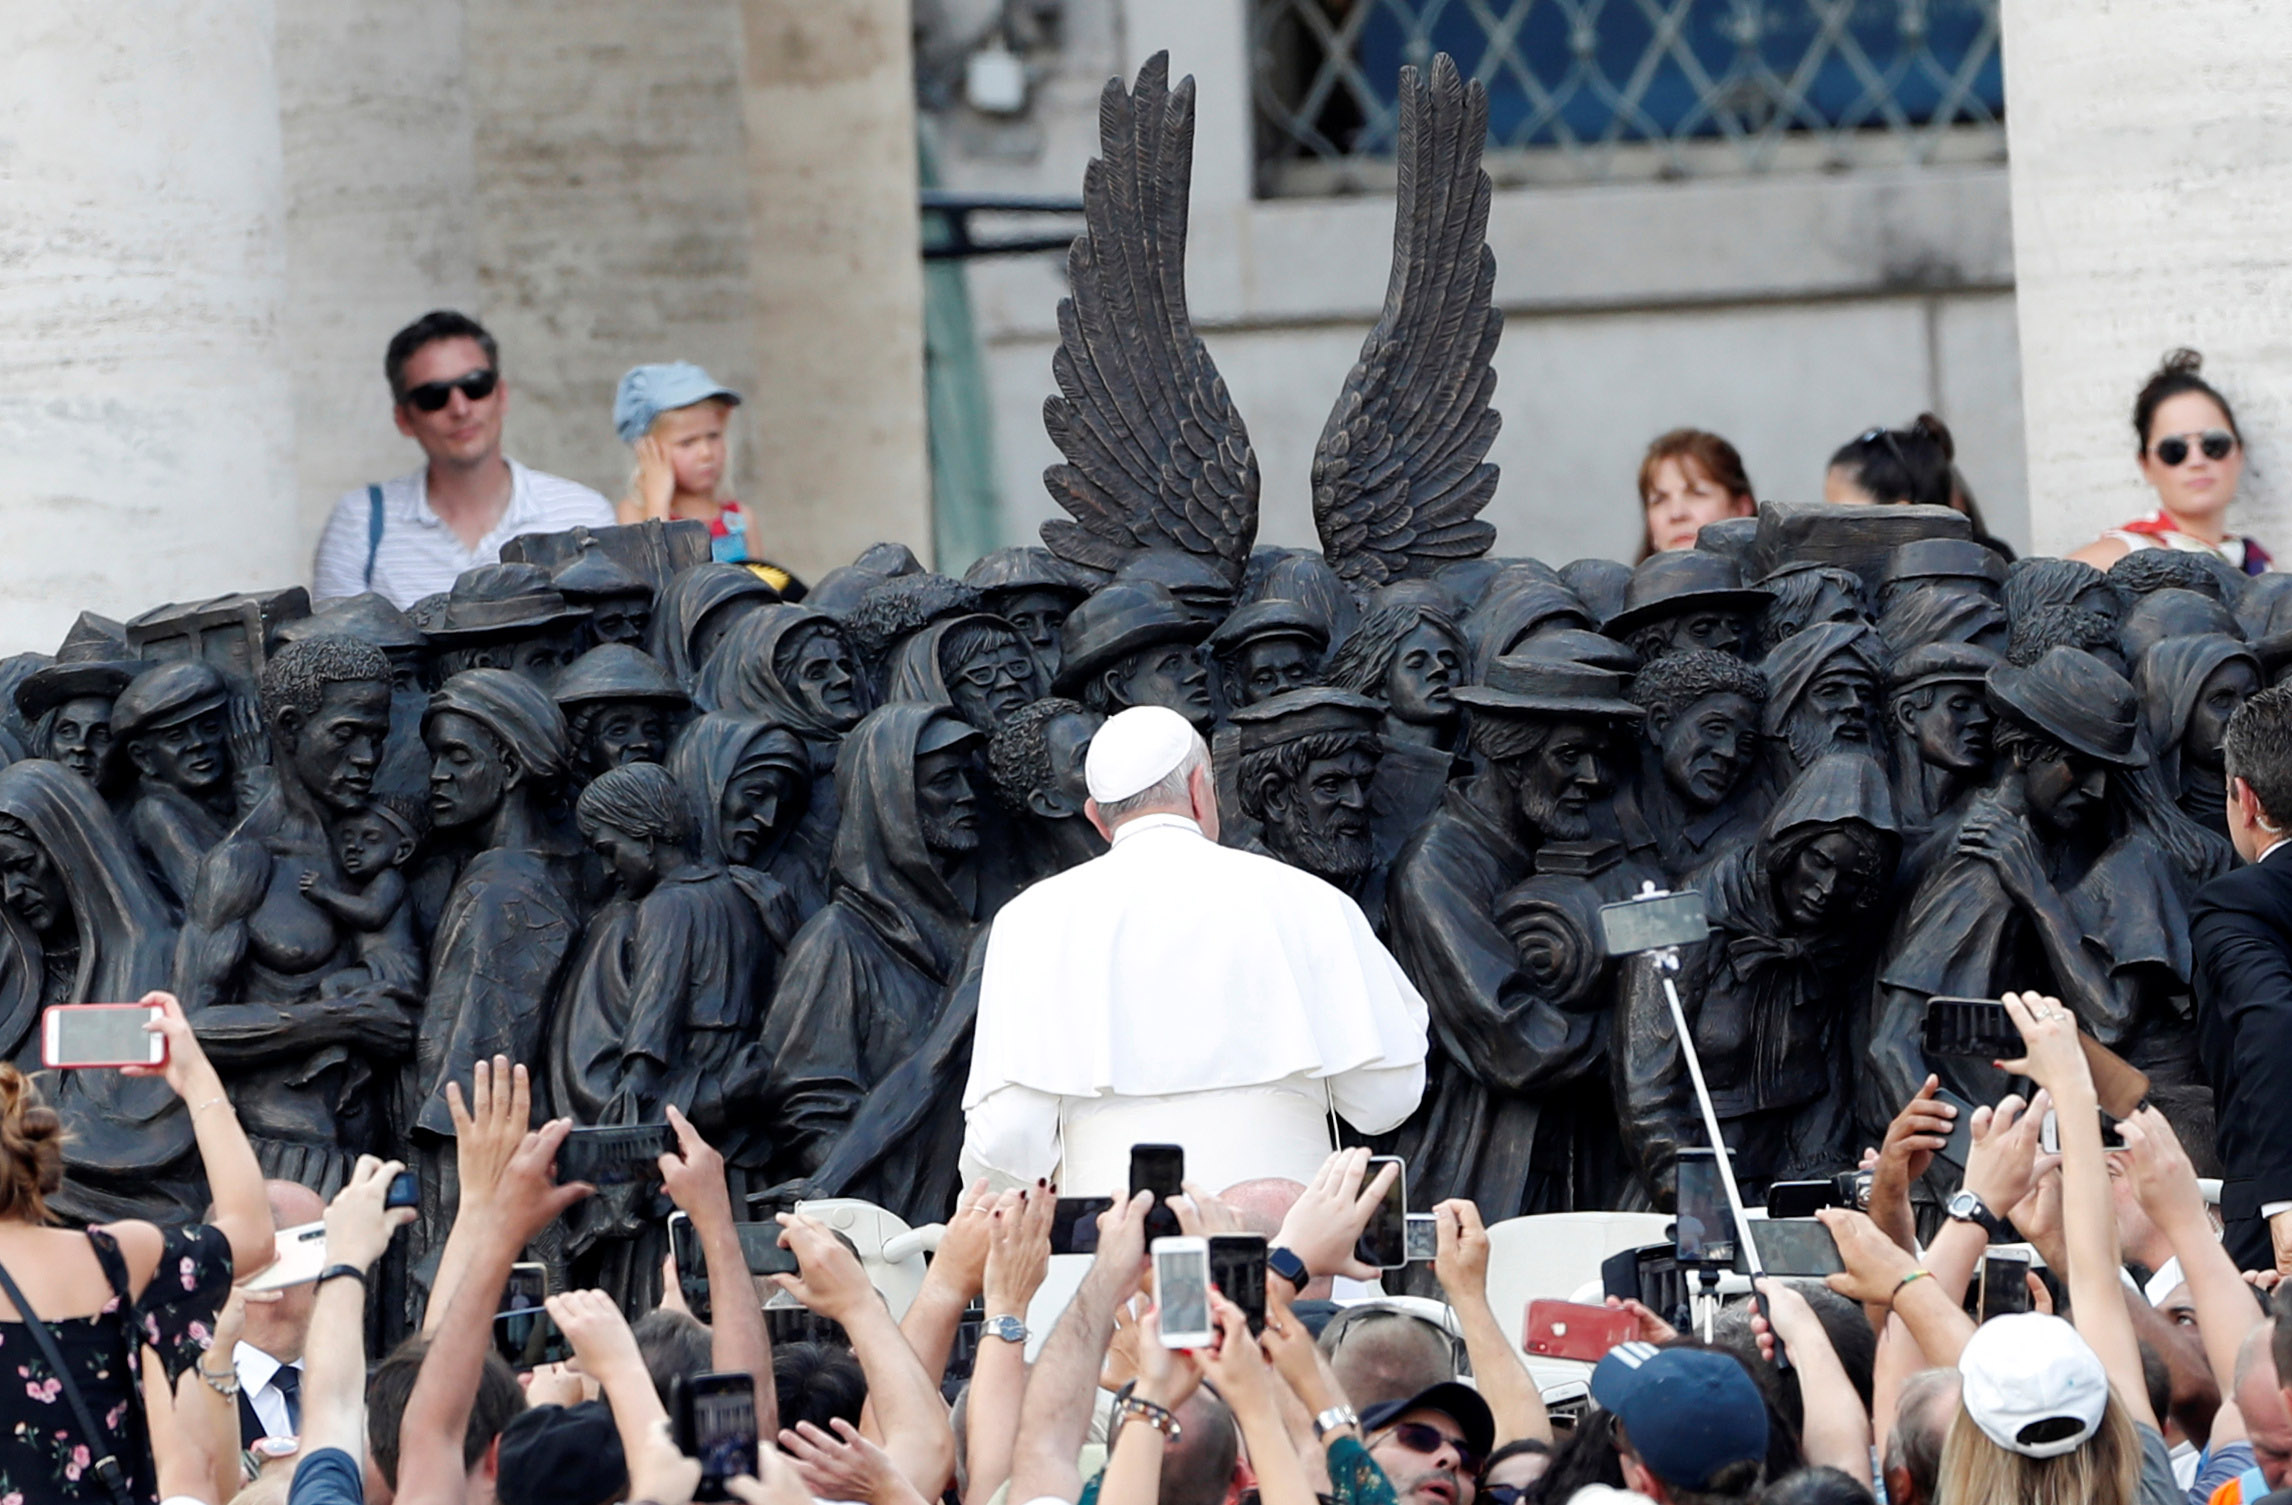 20190930T0624-542-CNS-POPE-MASS-MIGRANTS-REFUGEES